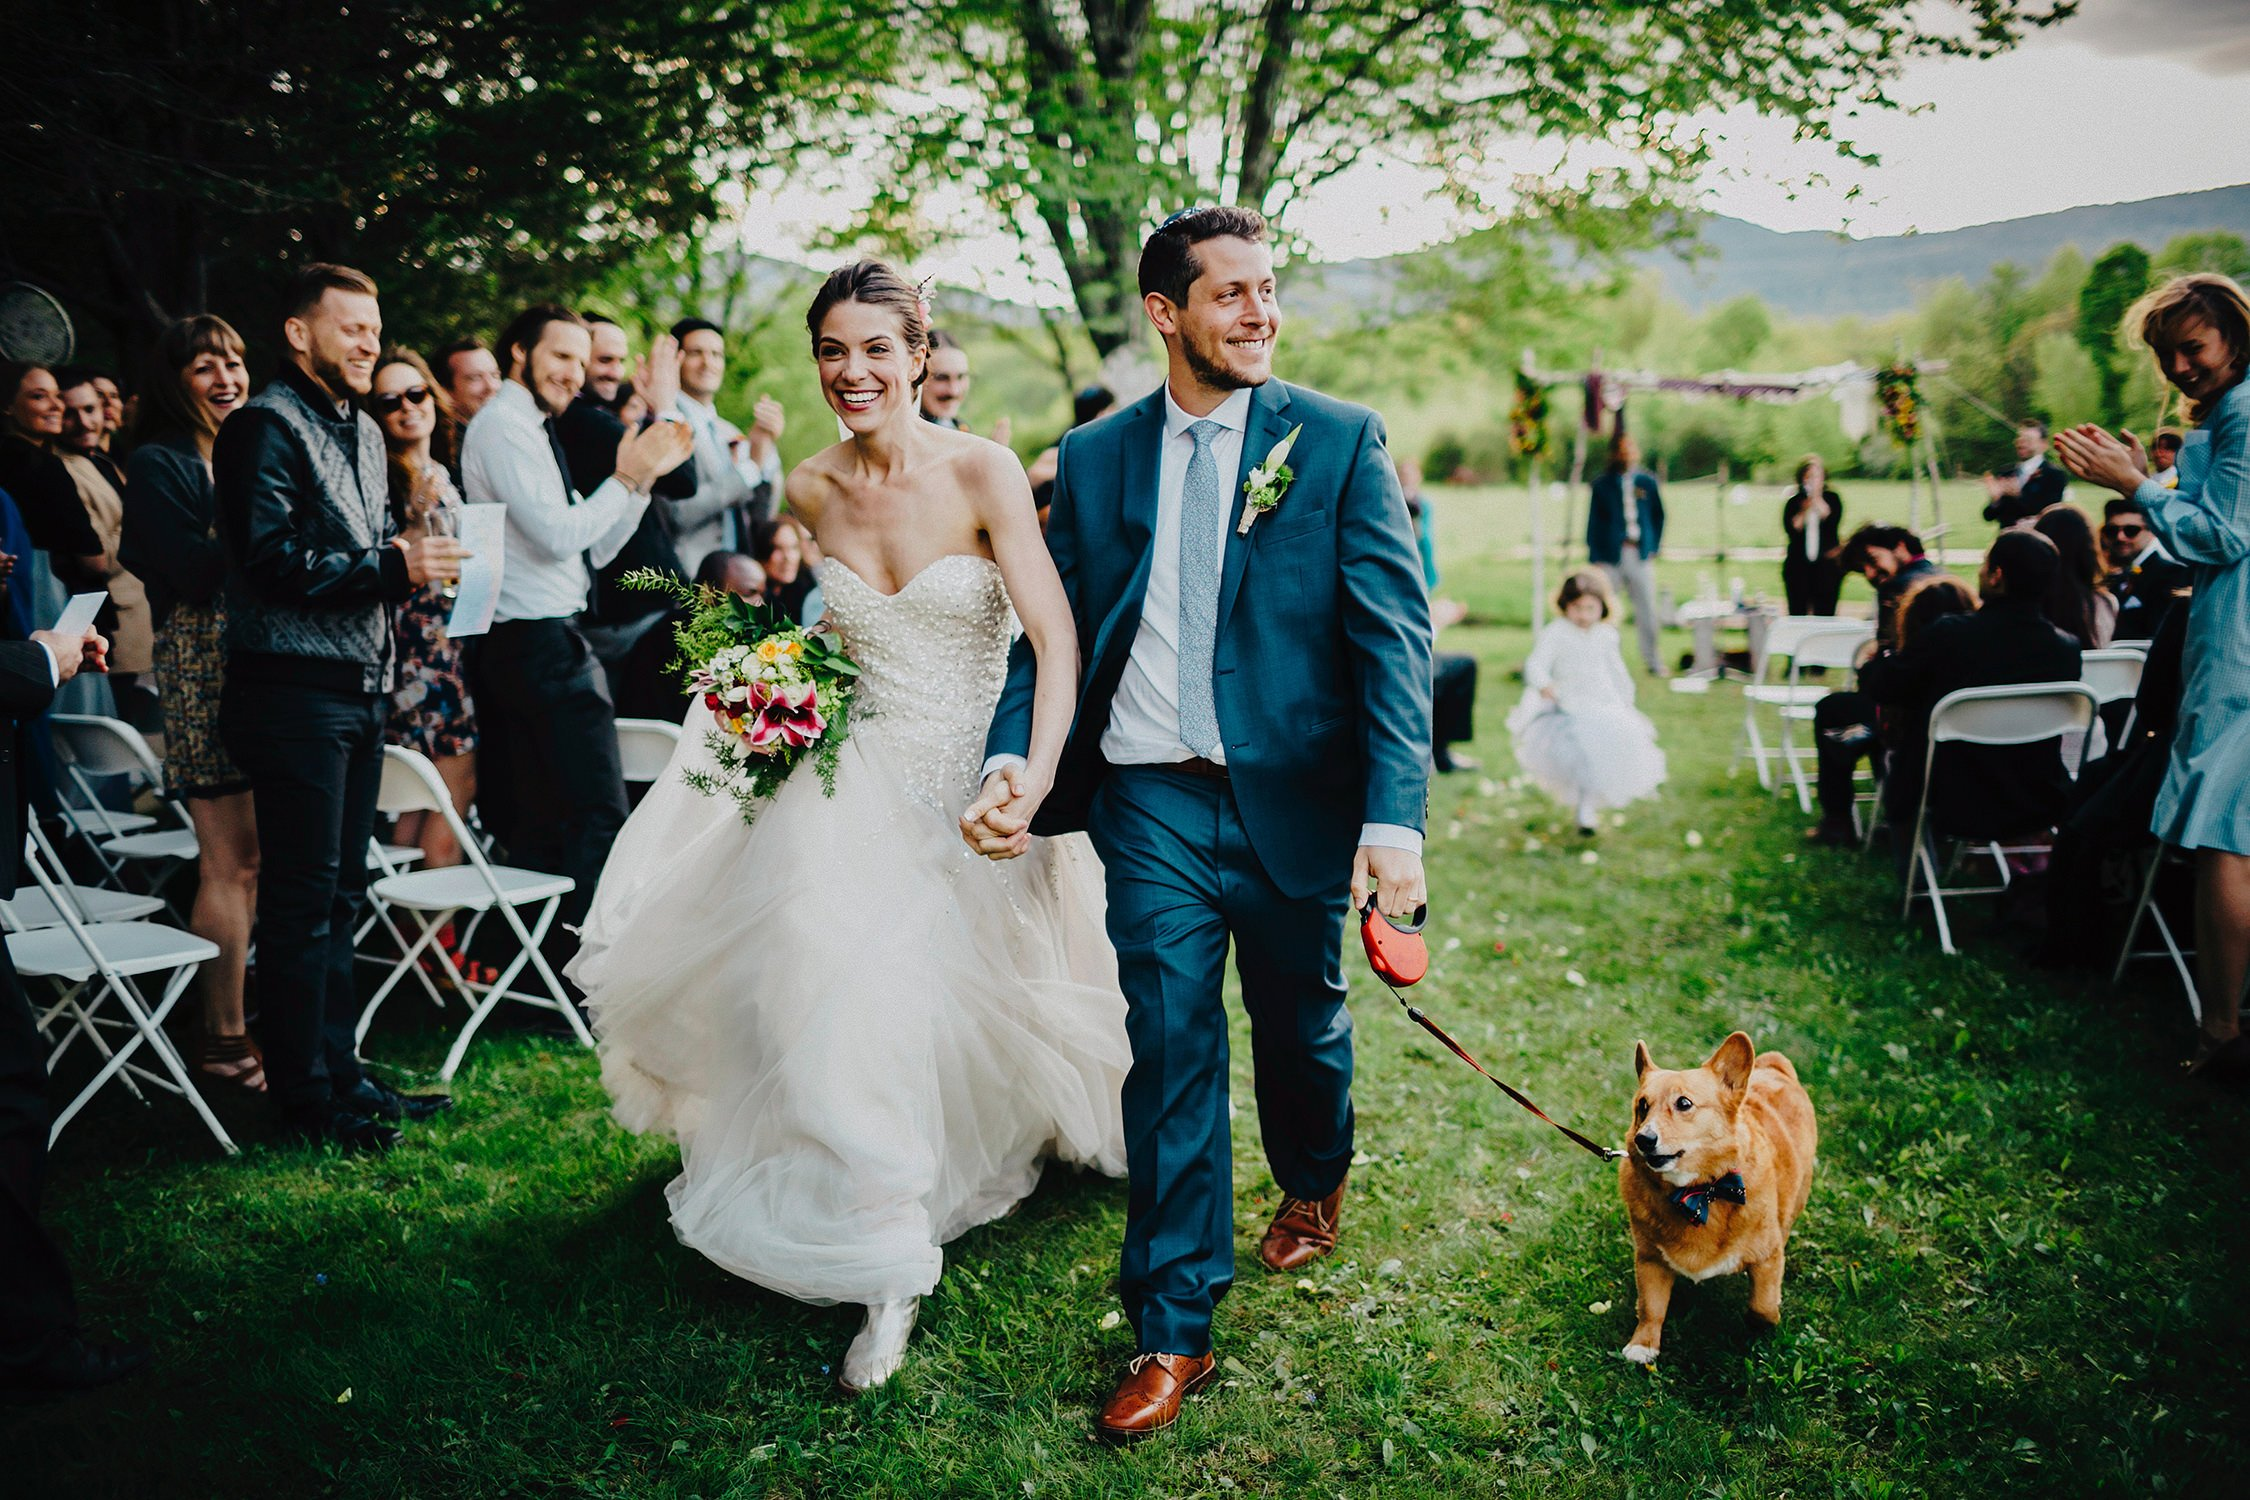 Kayti jake a spring wedding in the catskills the kaaterskill kayti jake wedding junglespirit